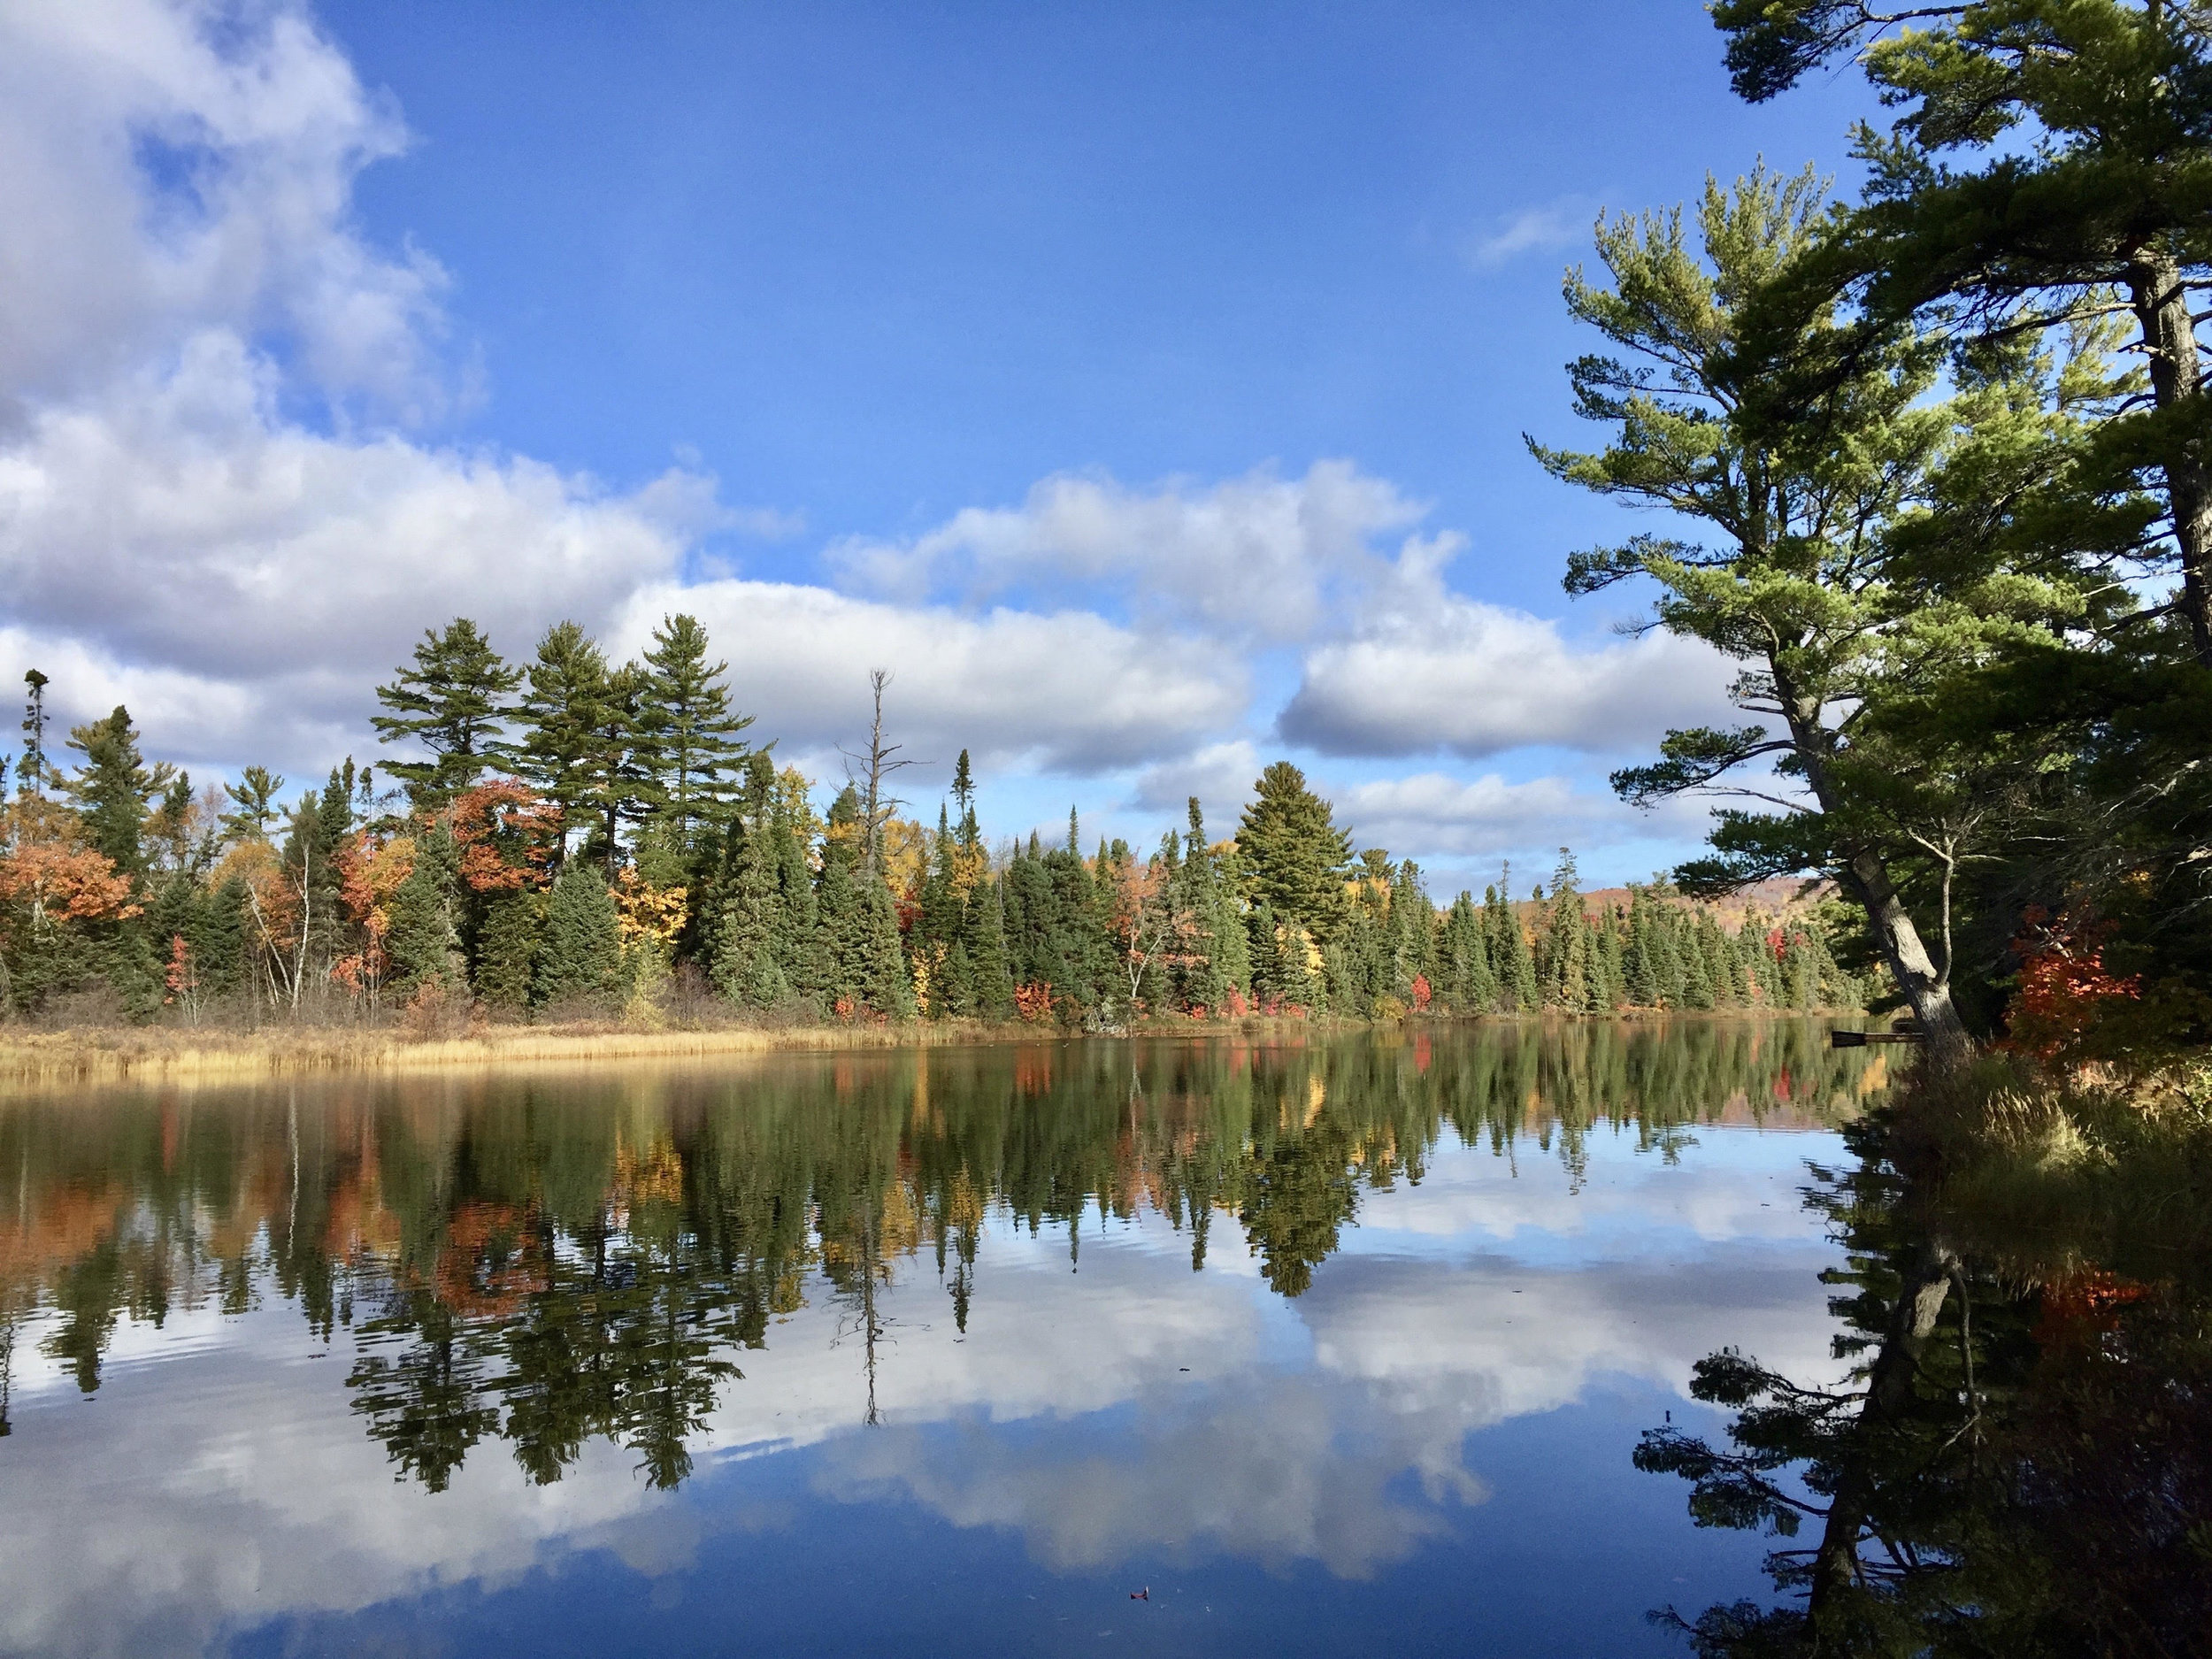 PRESERVES - Houghton Keweenaw Conservation District Preserves are open to the public for day use year round for compatible recreation, education and research activities. Please enjoy and be a good steward of these special natural areas.